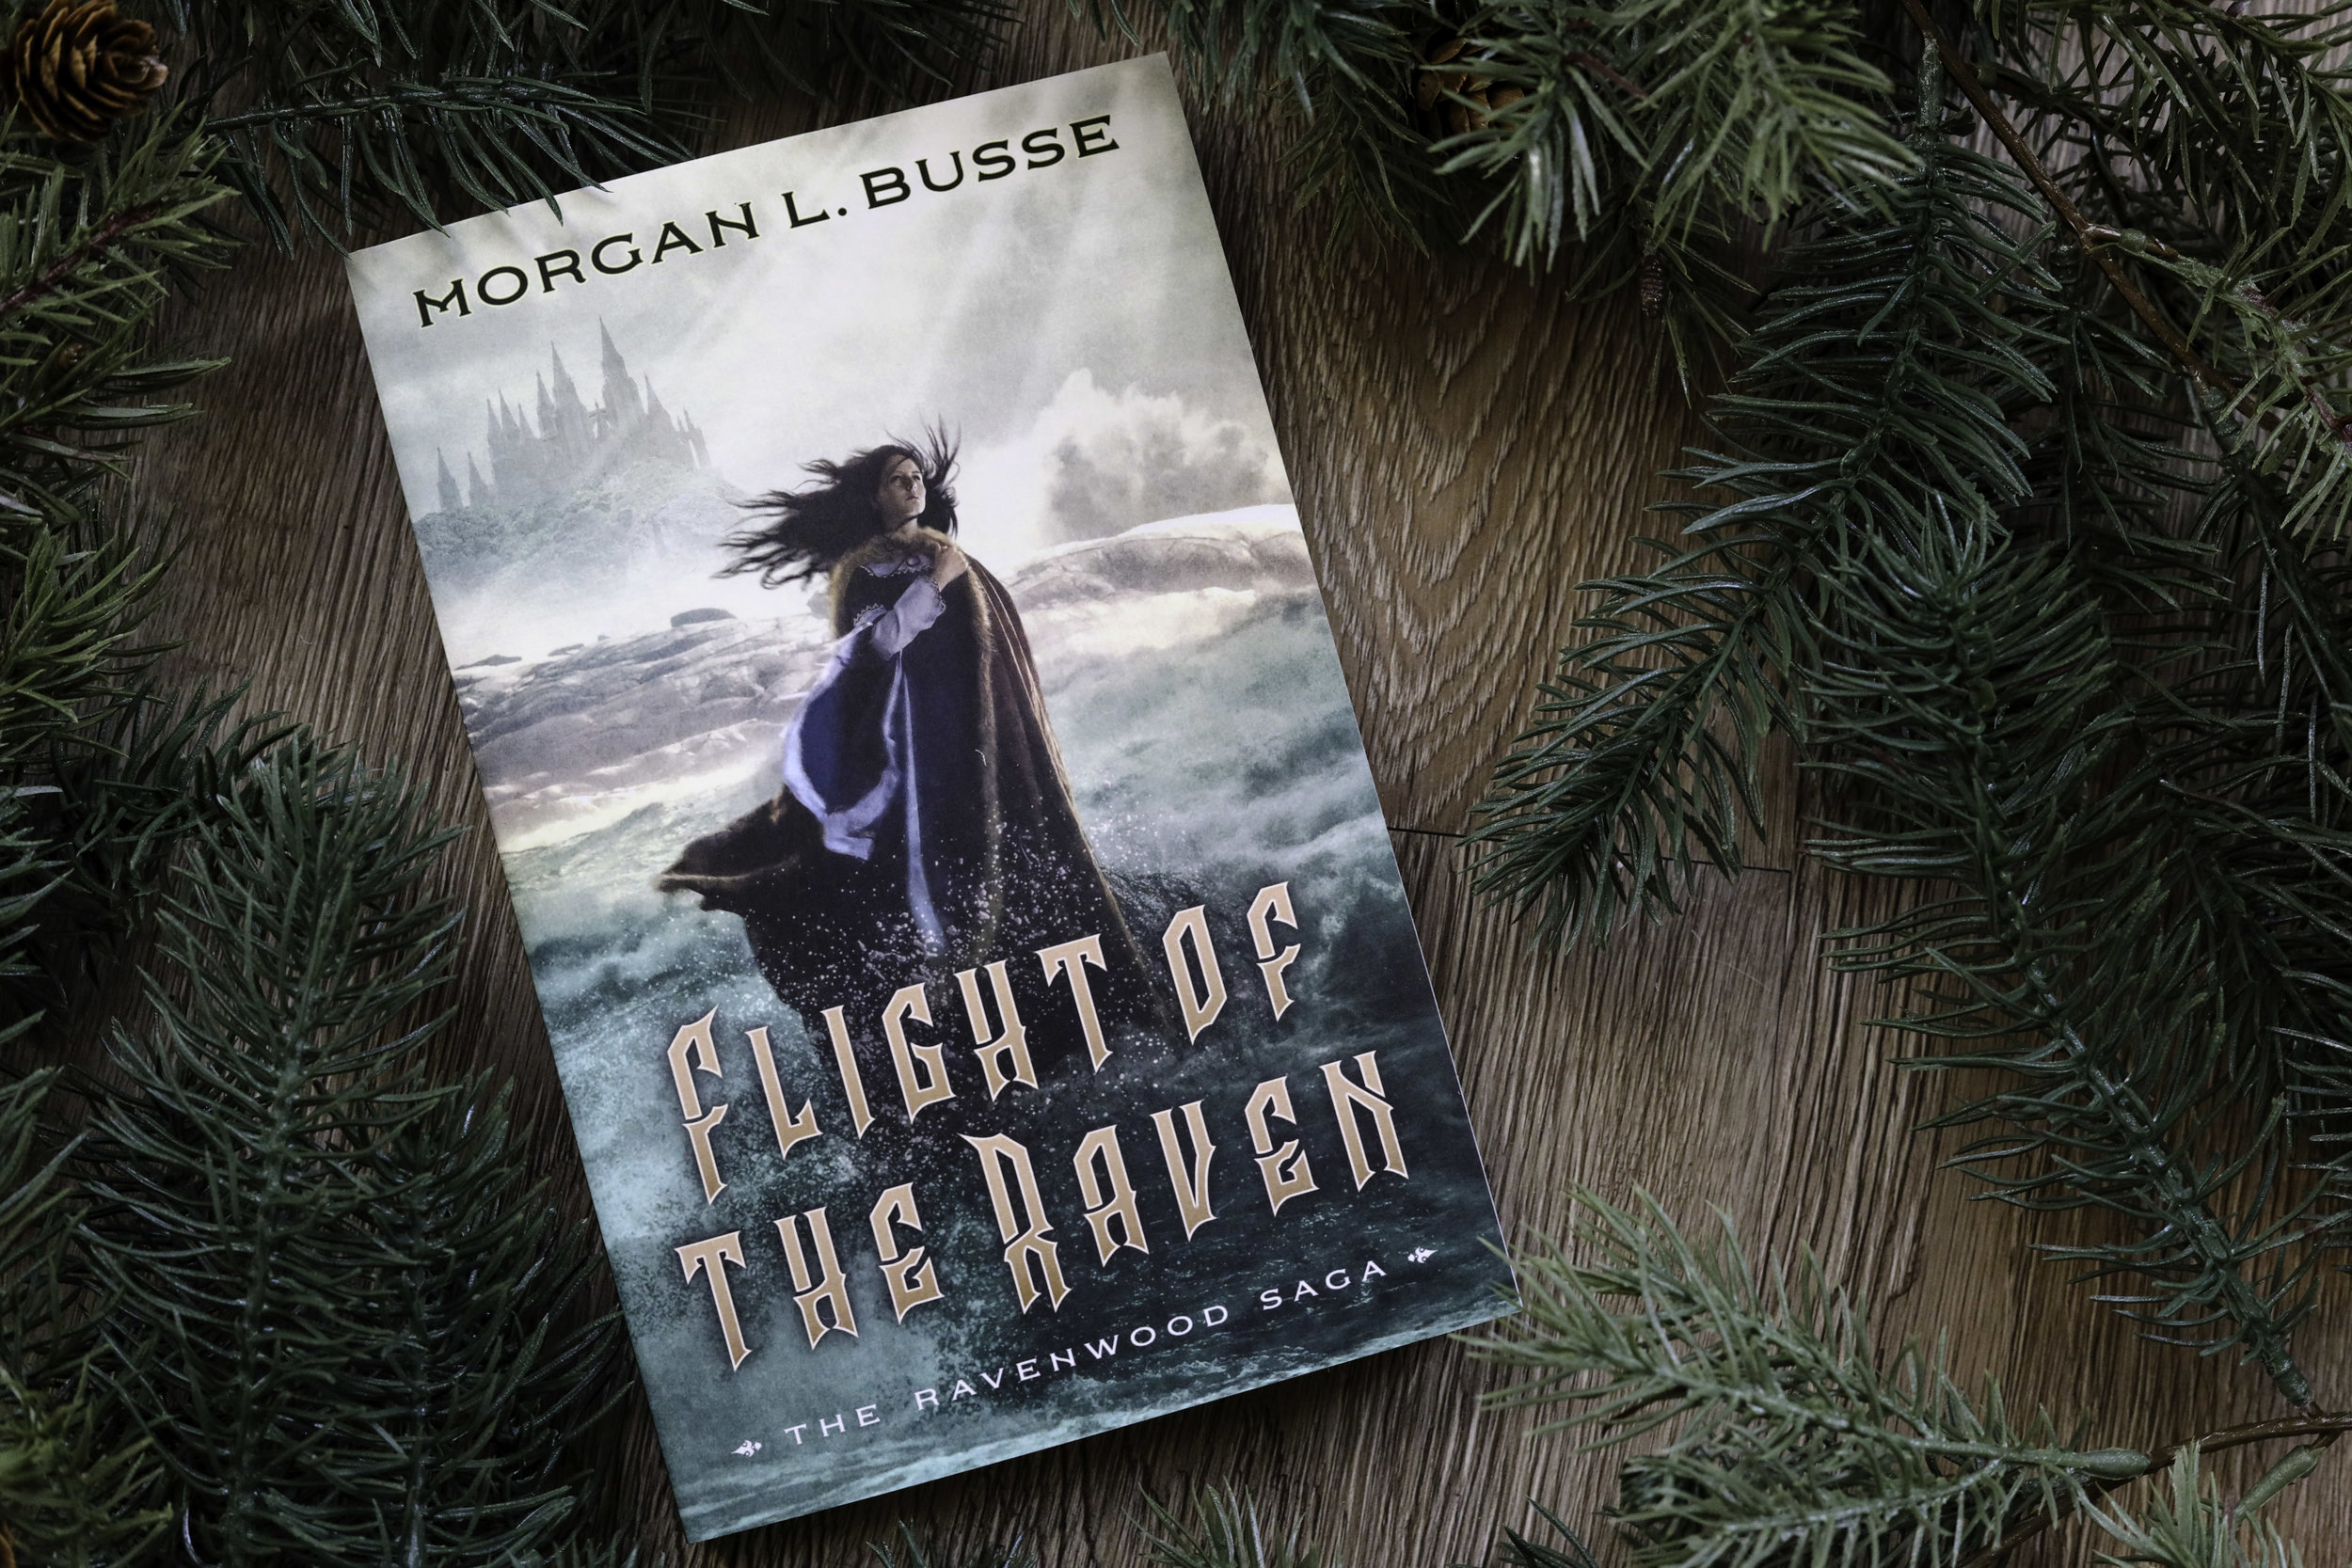 flight of the raven morgan l busse book review